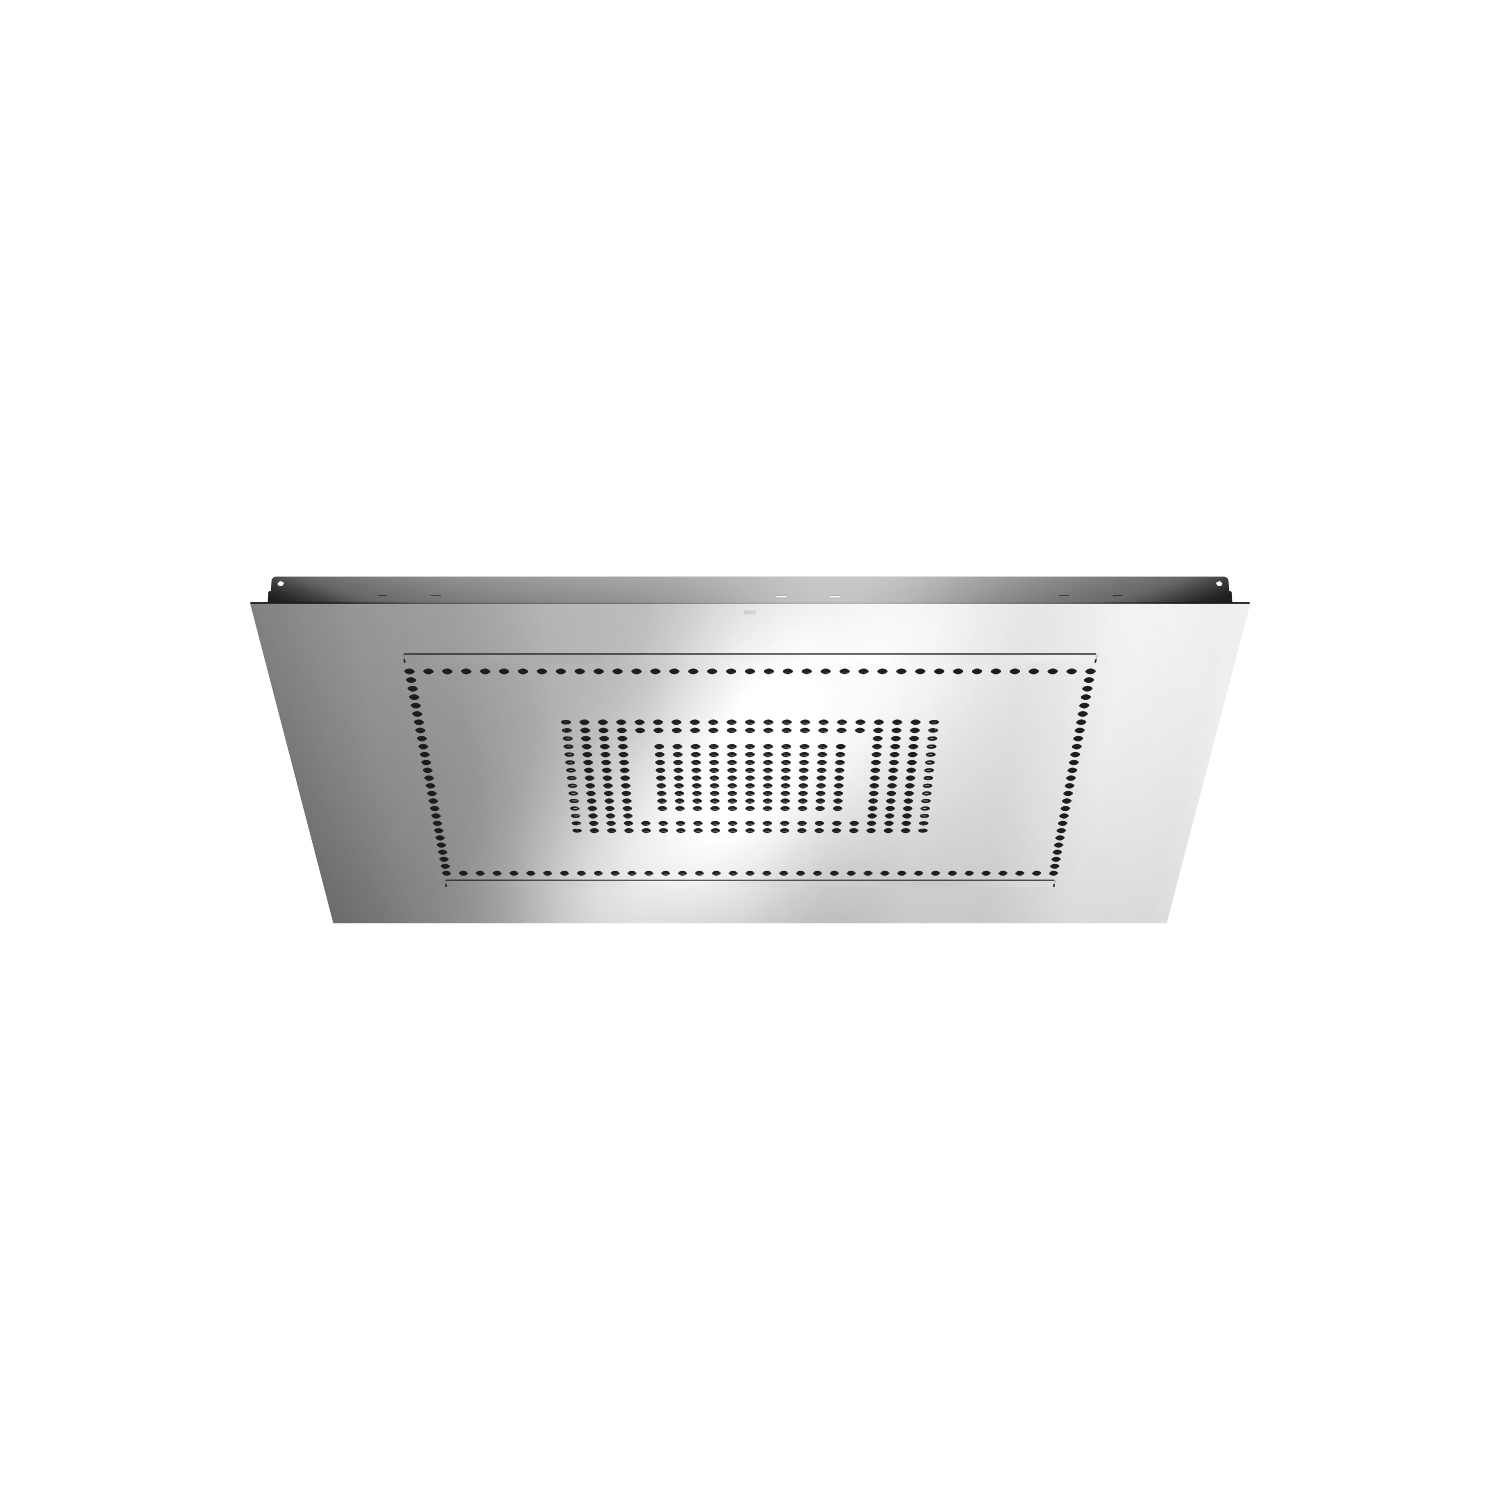 RAIN SKY M Rain panel for flush ceiling installation  manual control - polished stainless steel